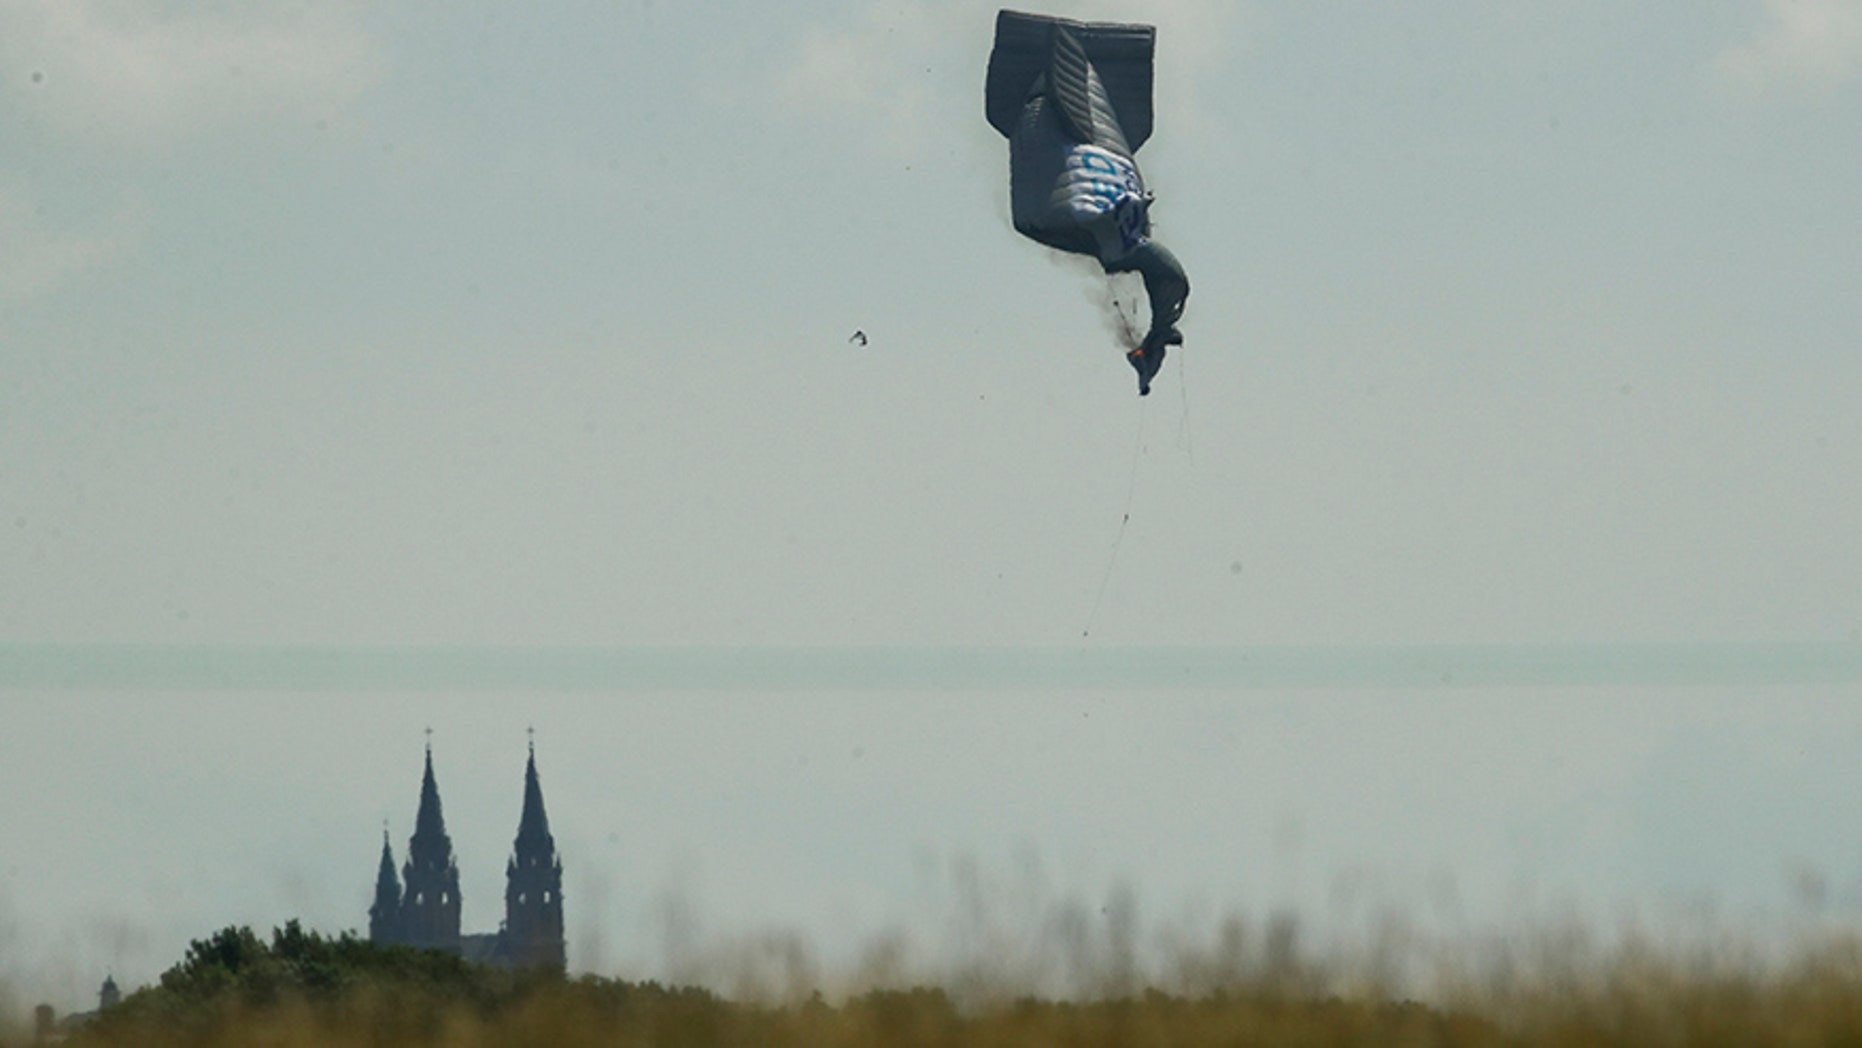 June 15, 2017: A blimp crashes during the first round of the U.S. Open golf tournament near Erin Hills in Erin, Wis.